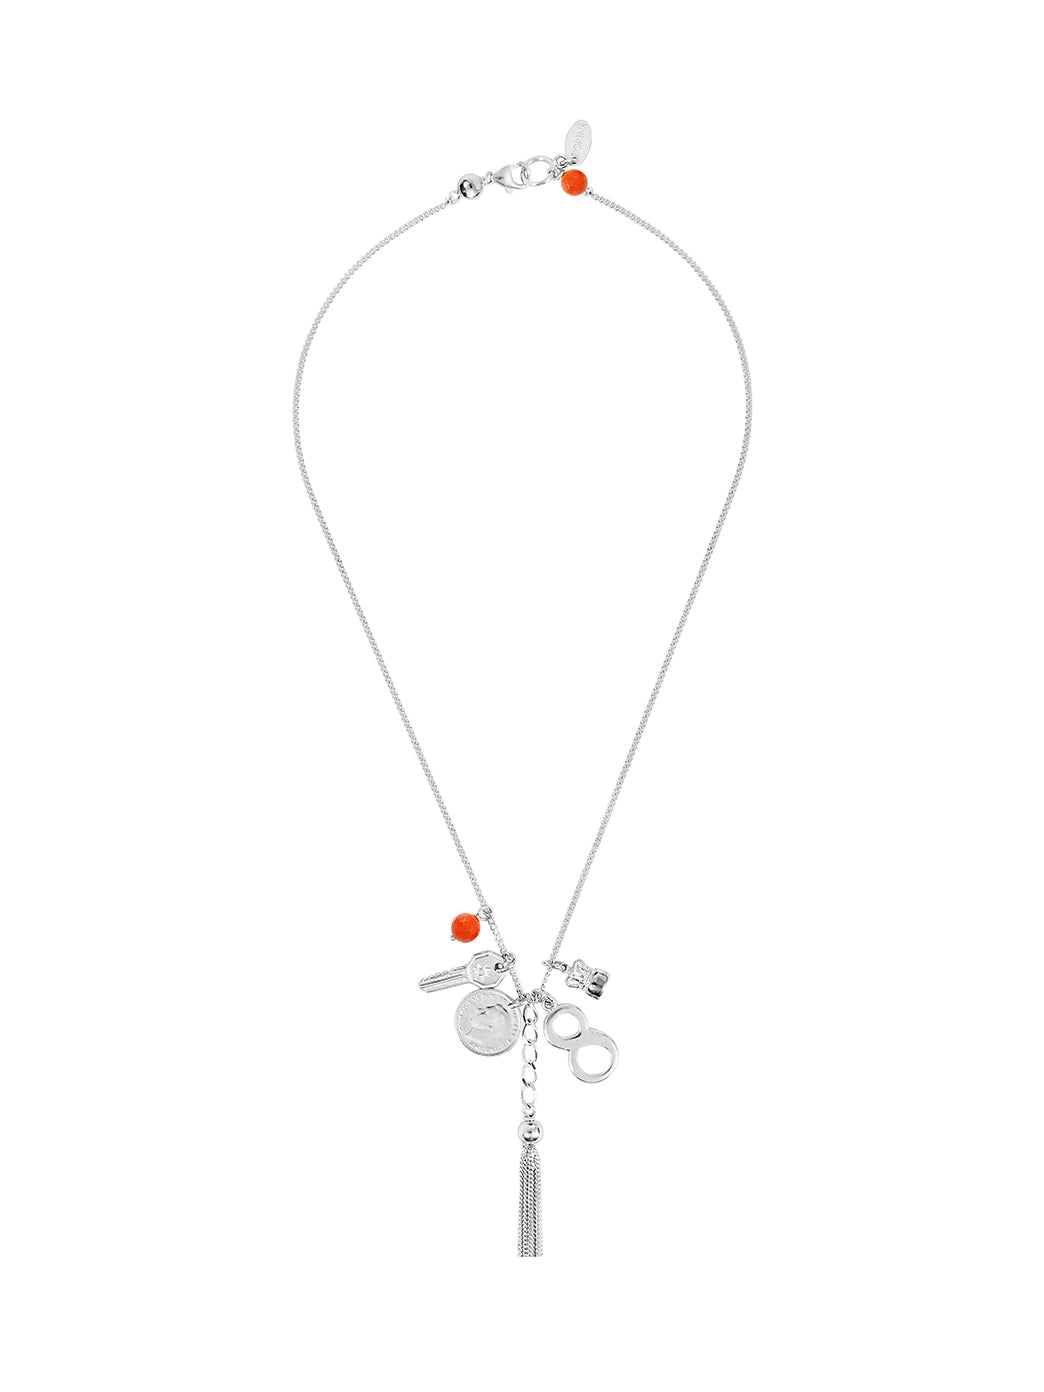 Fiorina Jewellery Simple Charm Necklace Coral